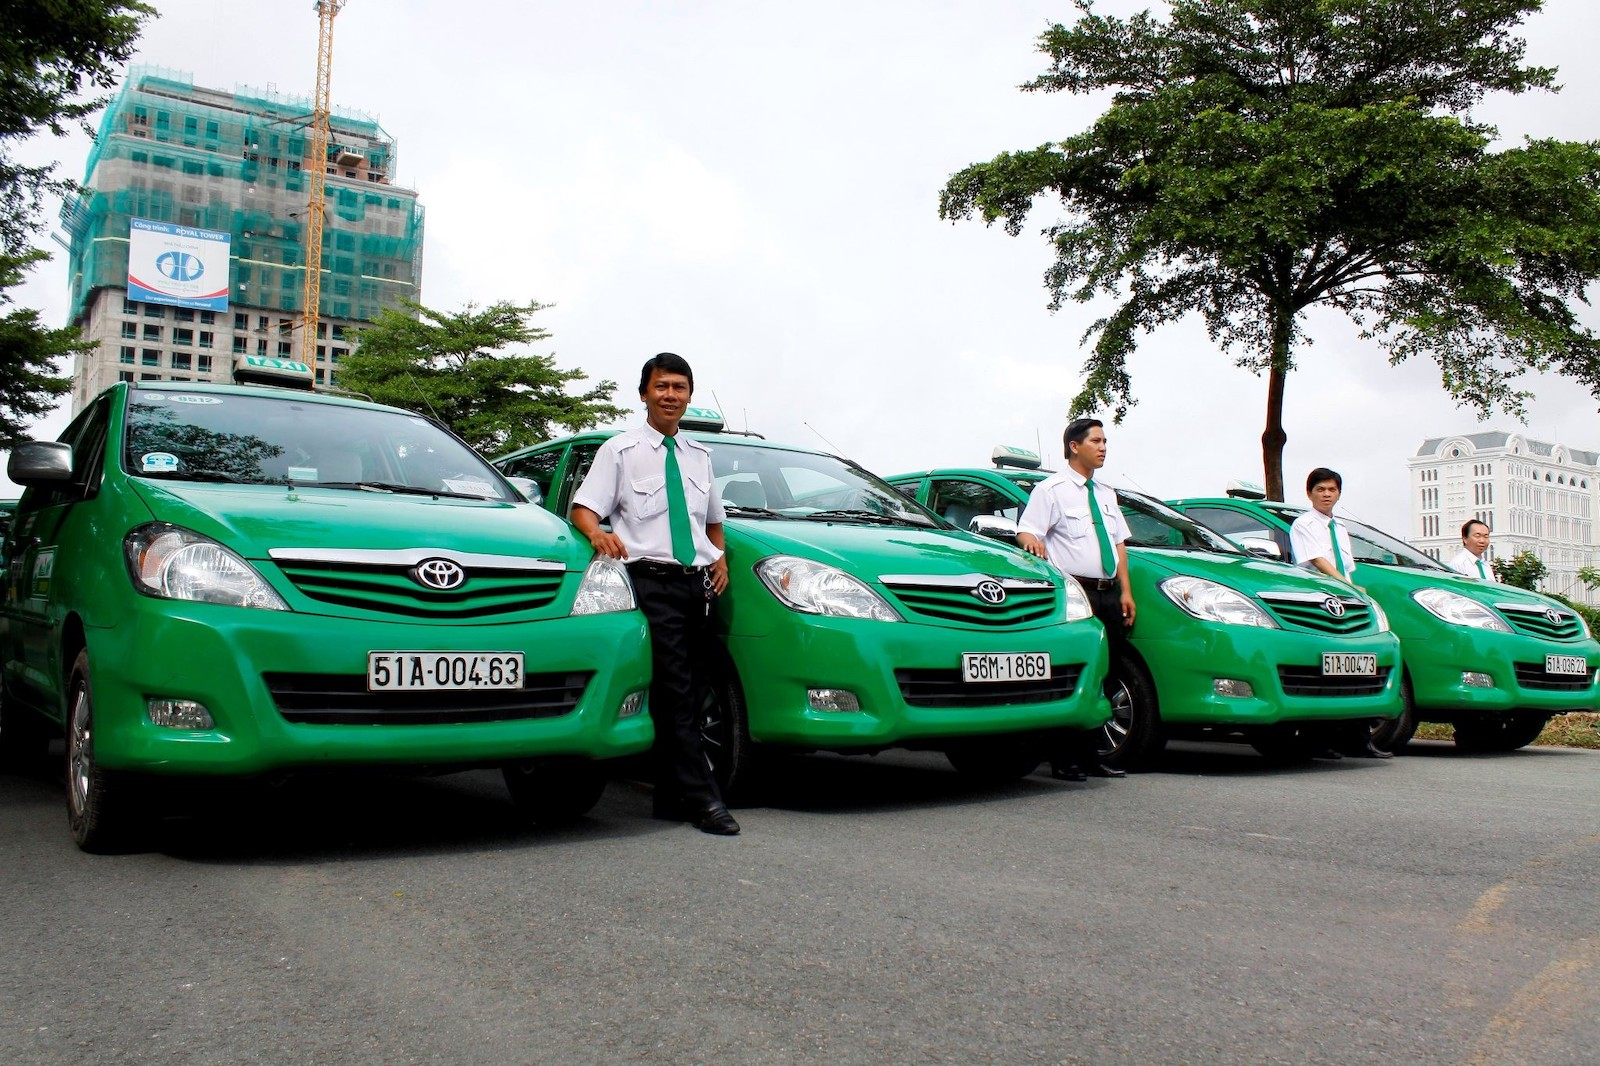 Image of Mai Linh Taxi drivers with their green cars in Vietnam